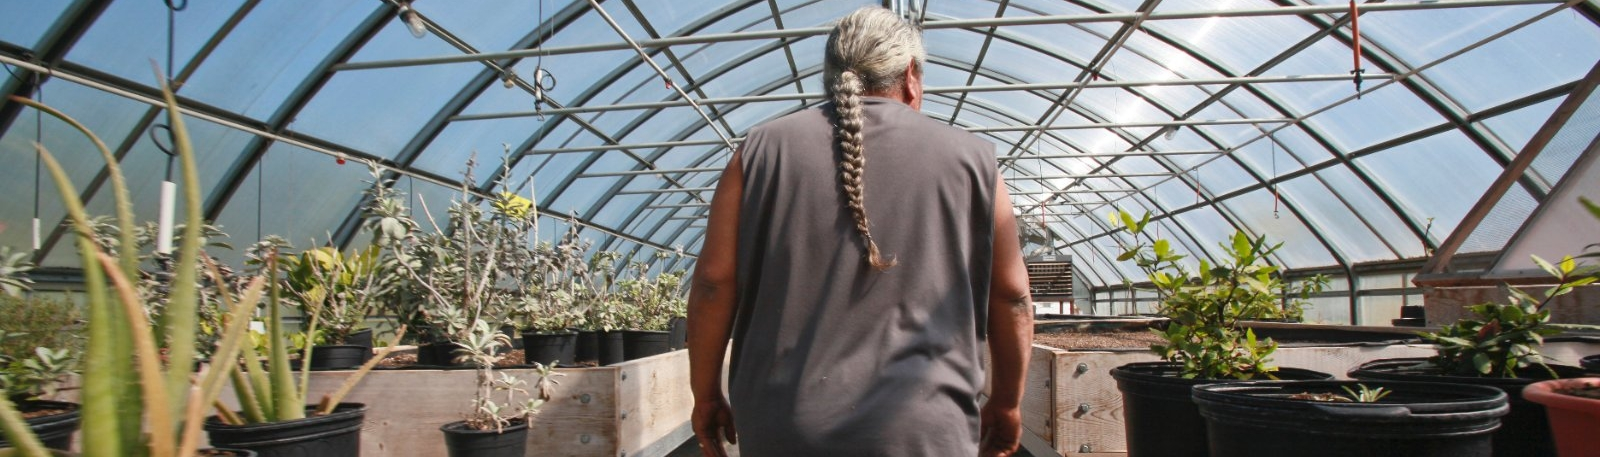 A man walking past plants in a greenhouse.